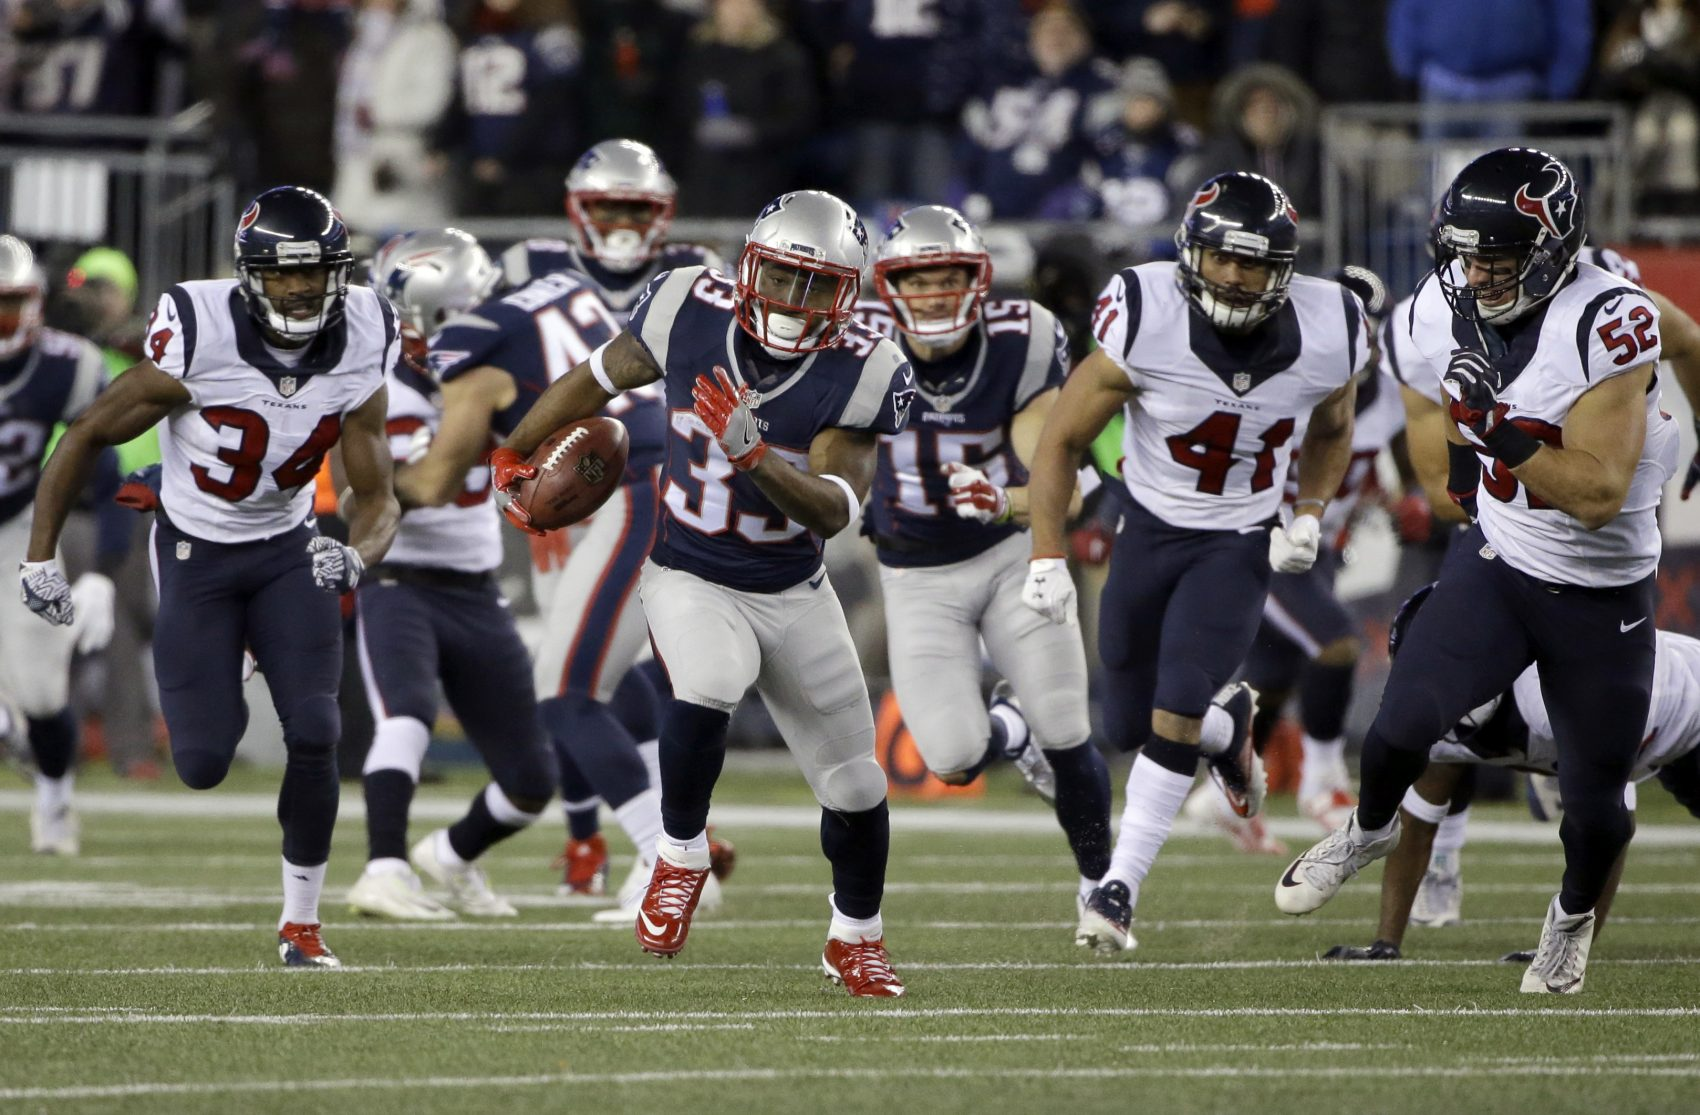 New England Patriots running back Dion Lewis runs for a touchdown against the Houston Texans during the first half of Saturday's AFC divisional playoff game at Gillette Stadium. (Elise Amendola/AP)